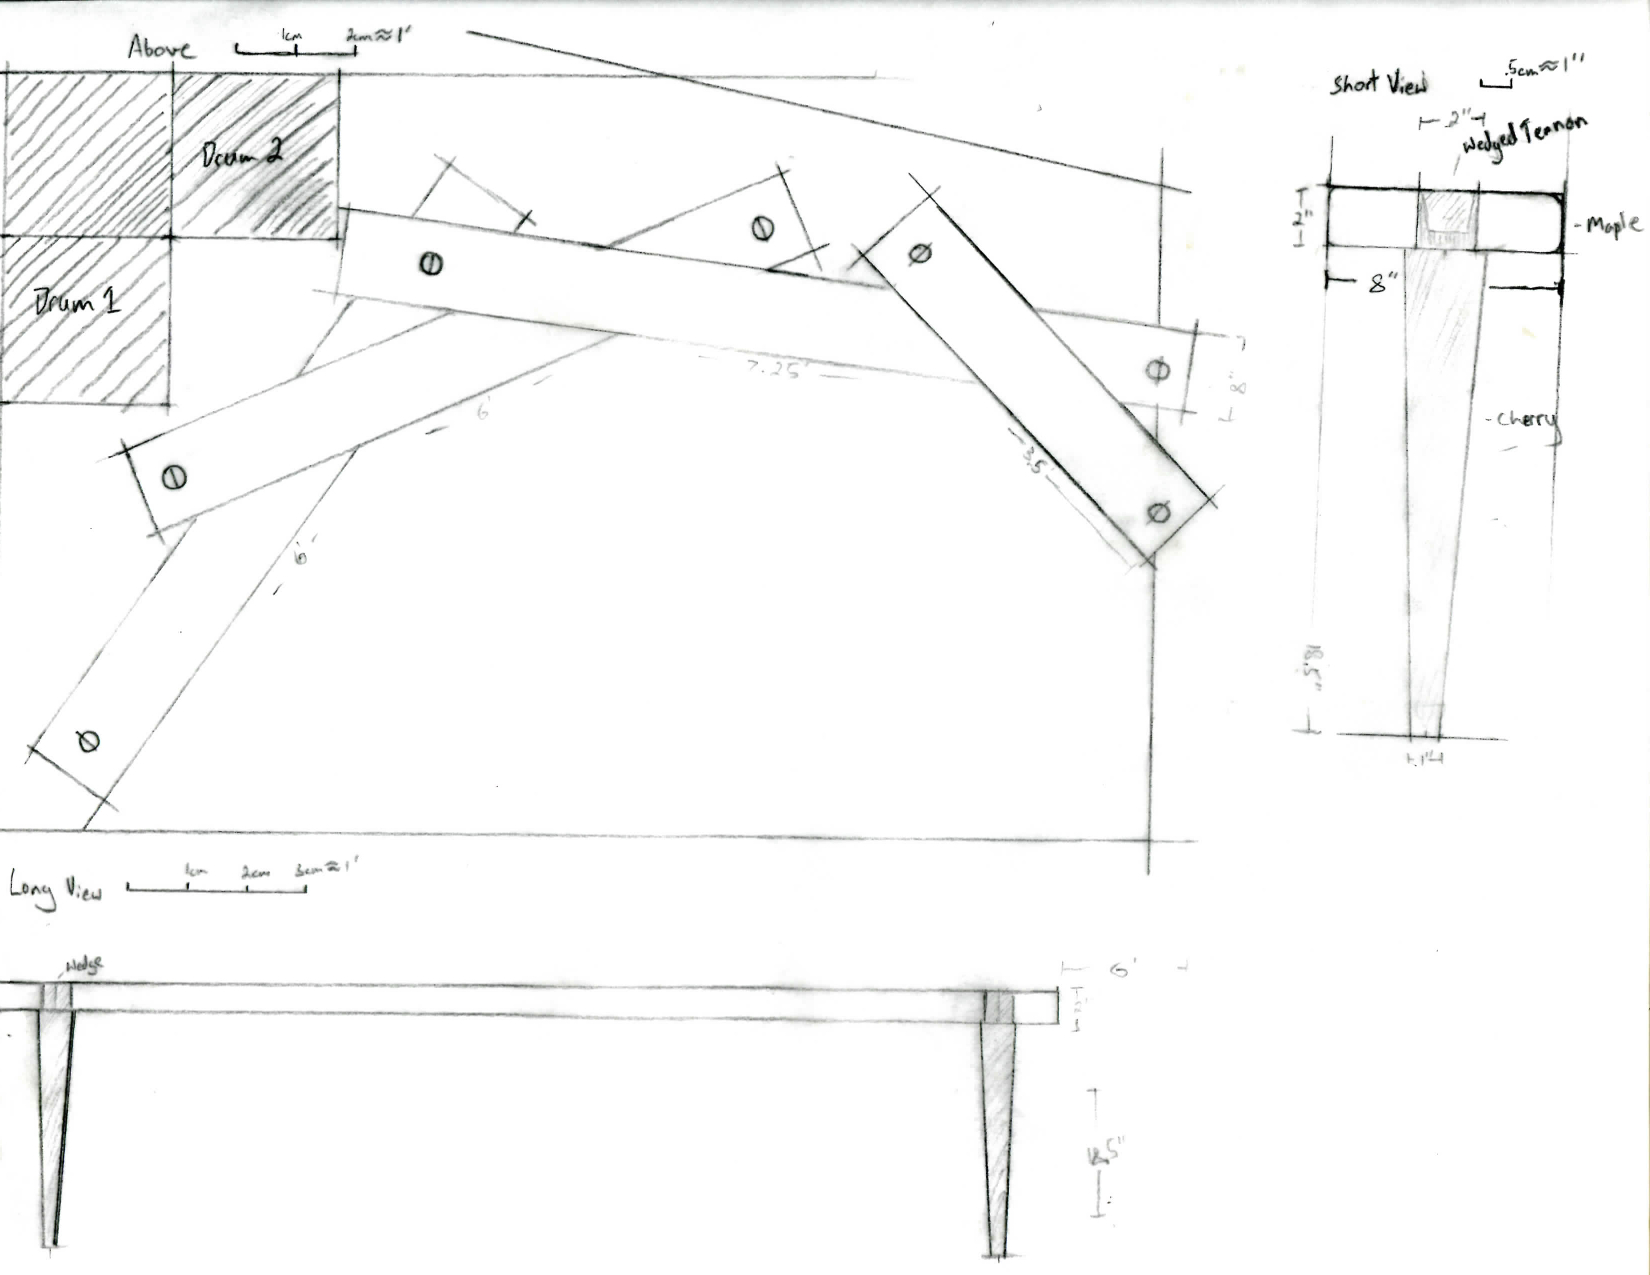 Tangent Bench 2 Layout.jpg